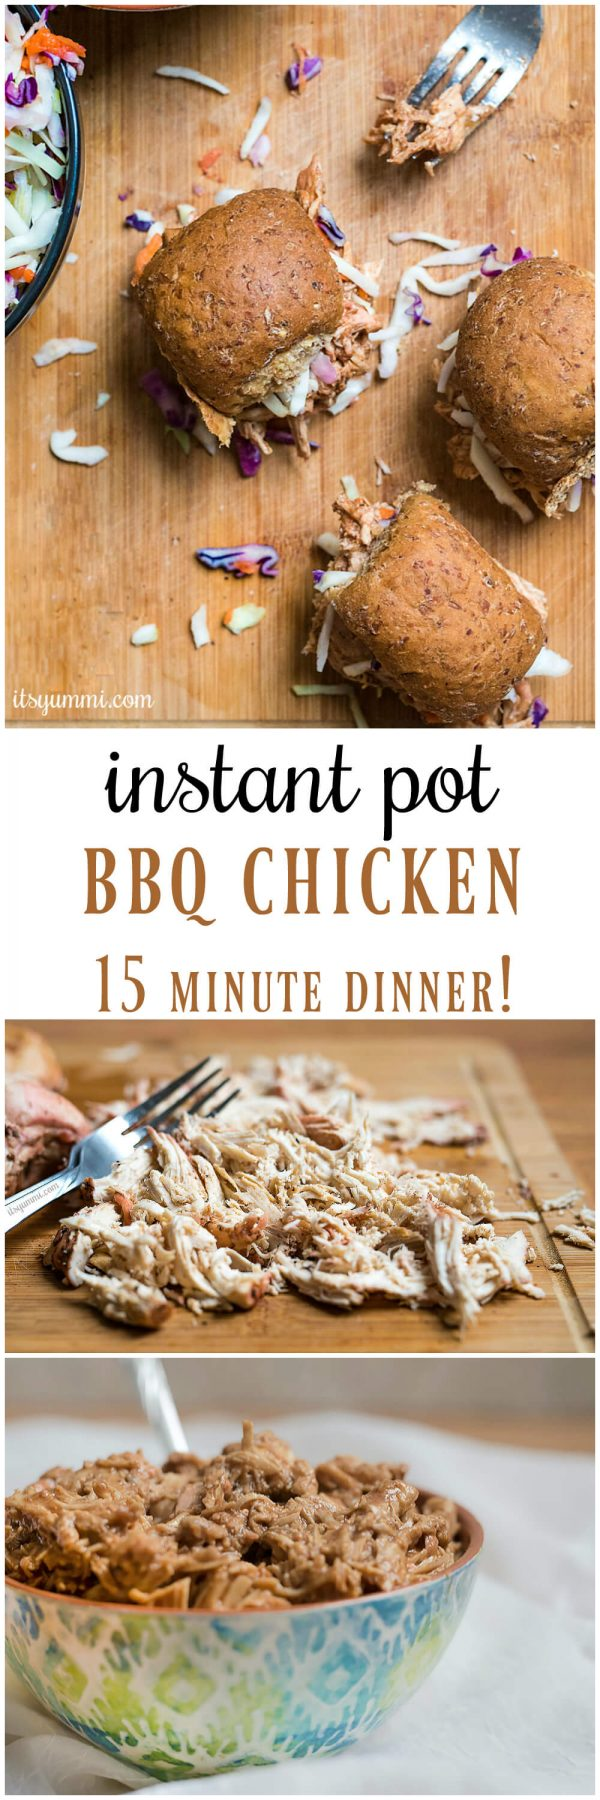 Instant Pot BBQ chicken - an easy pressure cooker chicken recipe, made in 15 minutes! Add it to your favorite soup or casserole recipe. Or, make Instant Pot pulled chicken sliders. #instantpot #recipe #bbq #pressurecooker